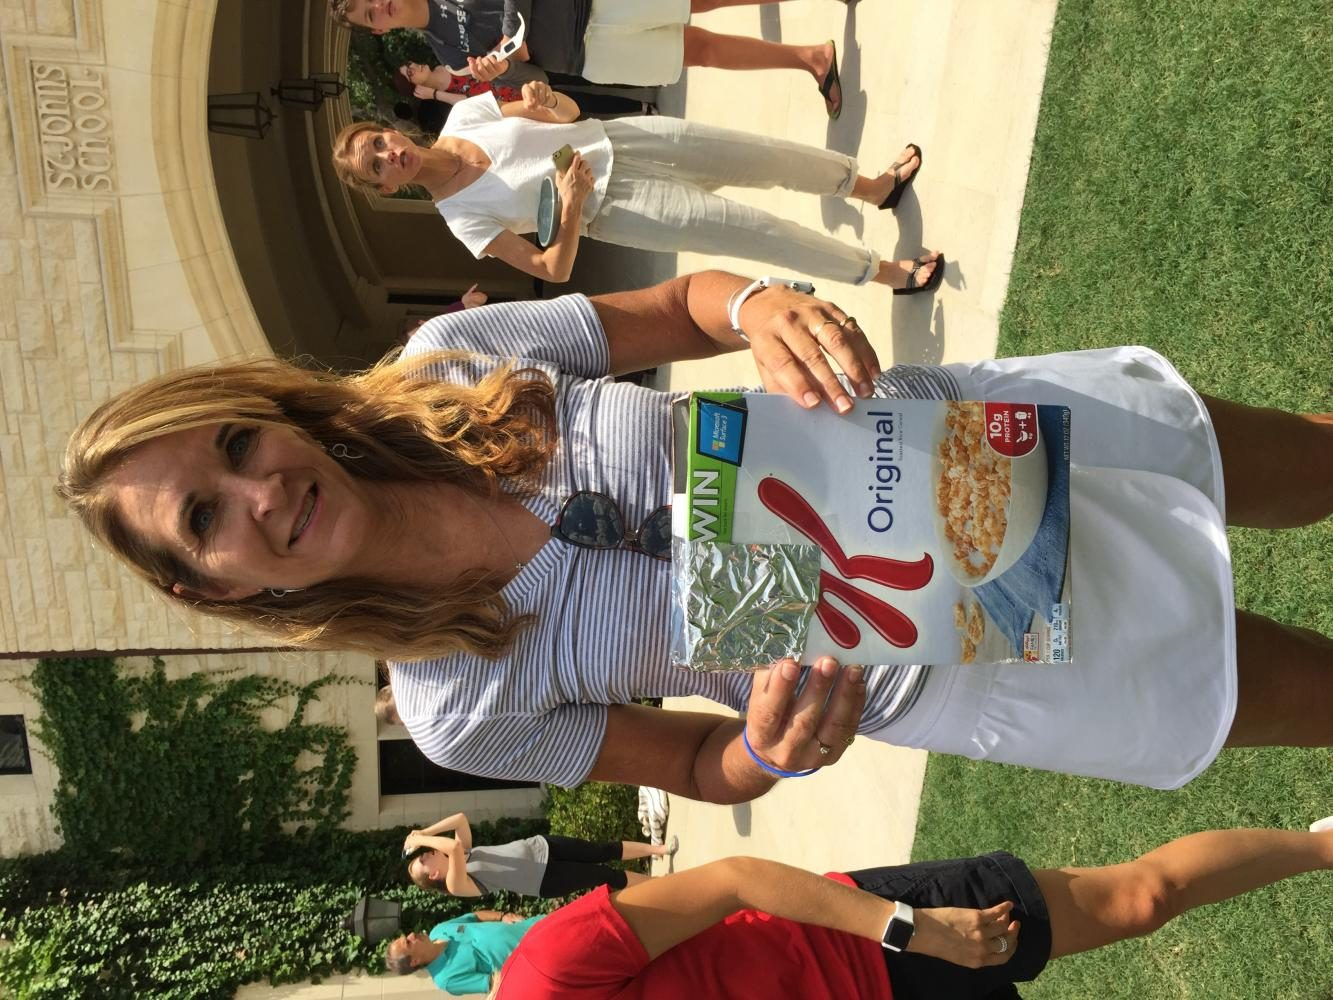 Brenda Mercado shows off her eclipse viewing device, made from a cereal box.